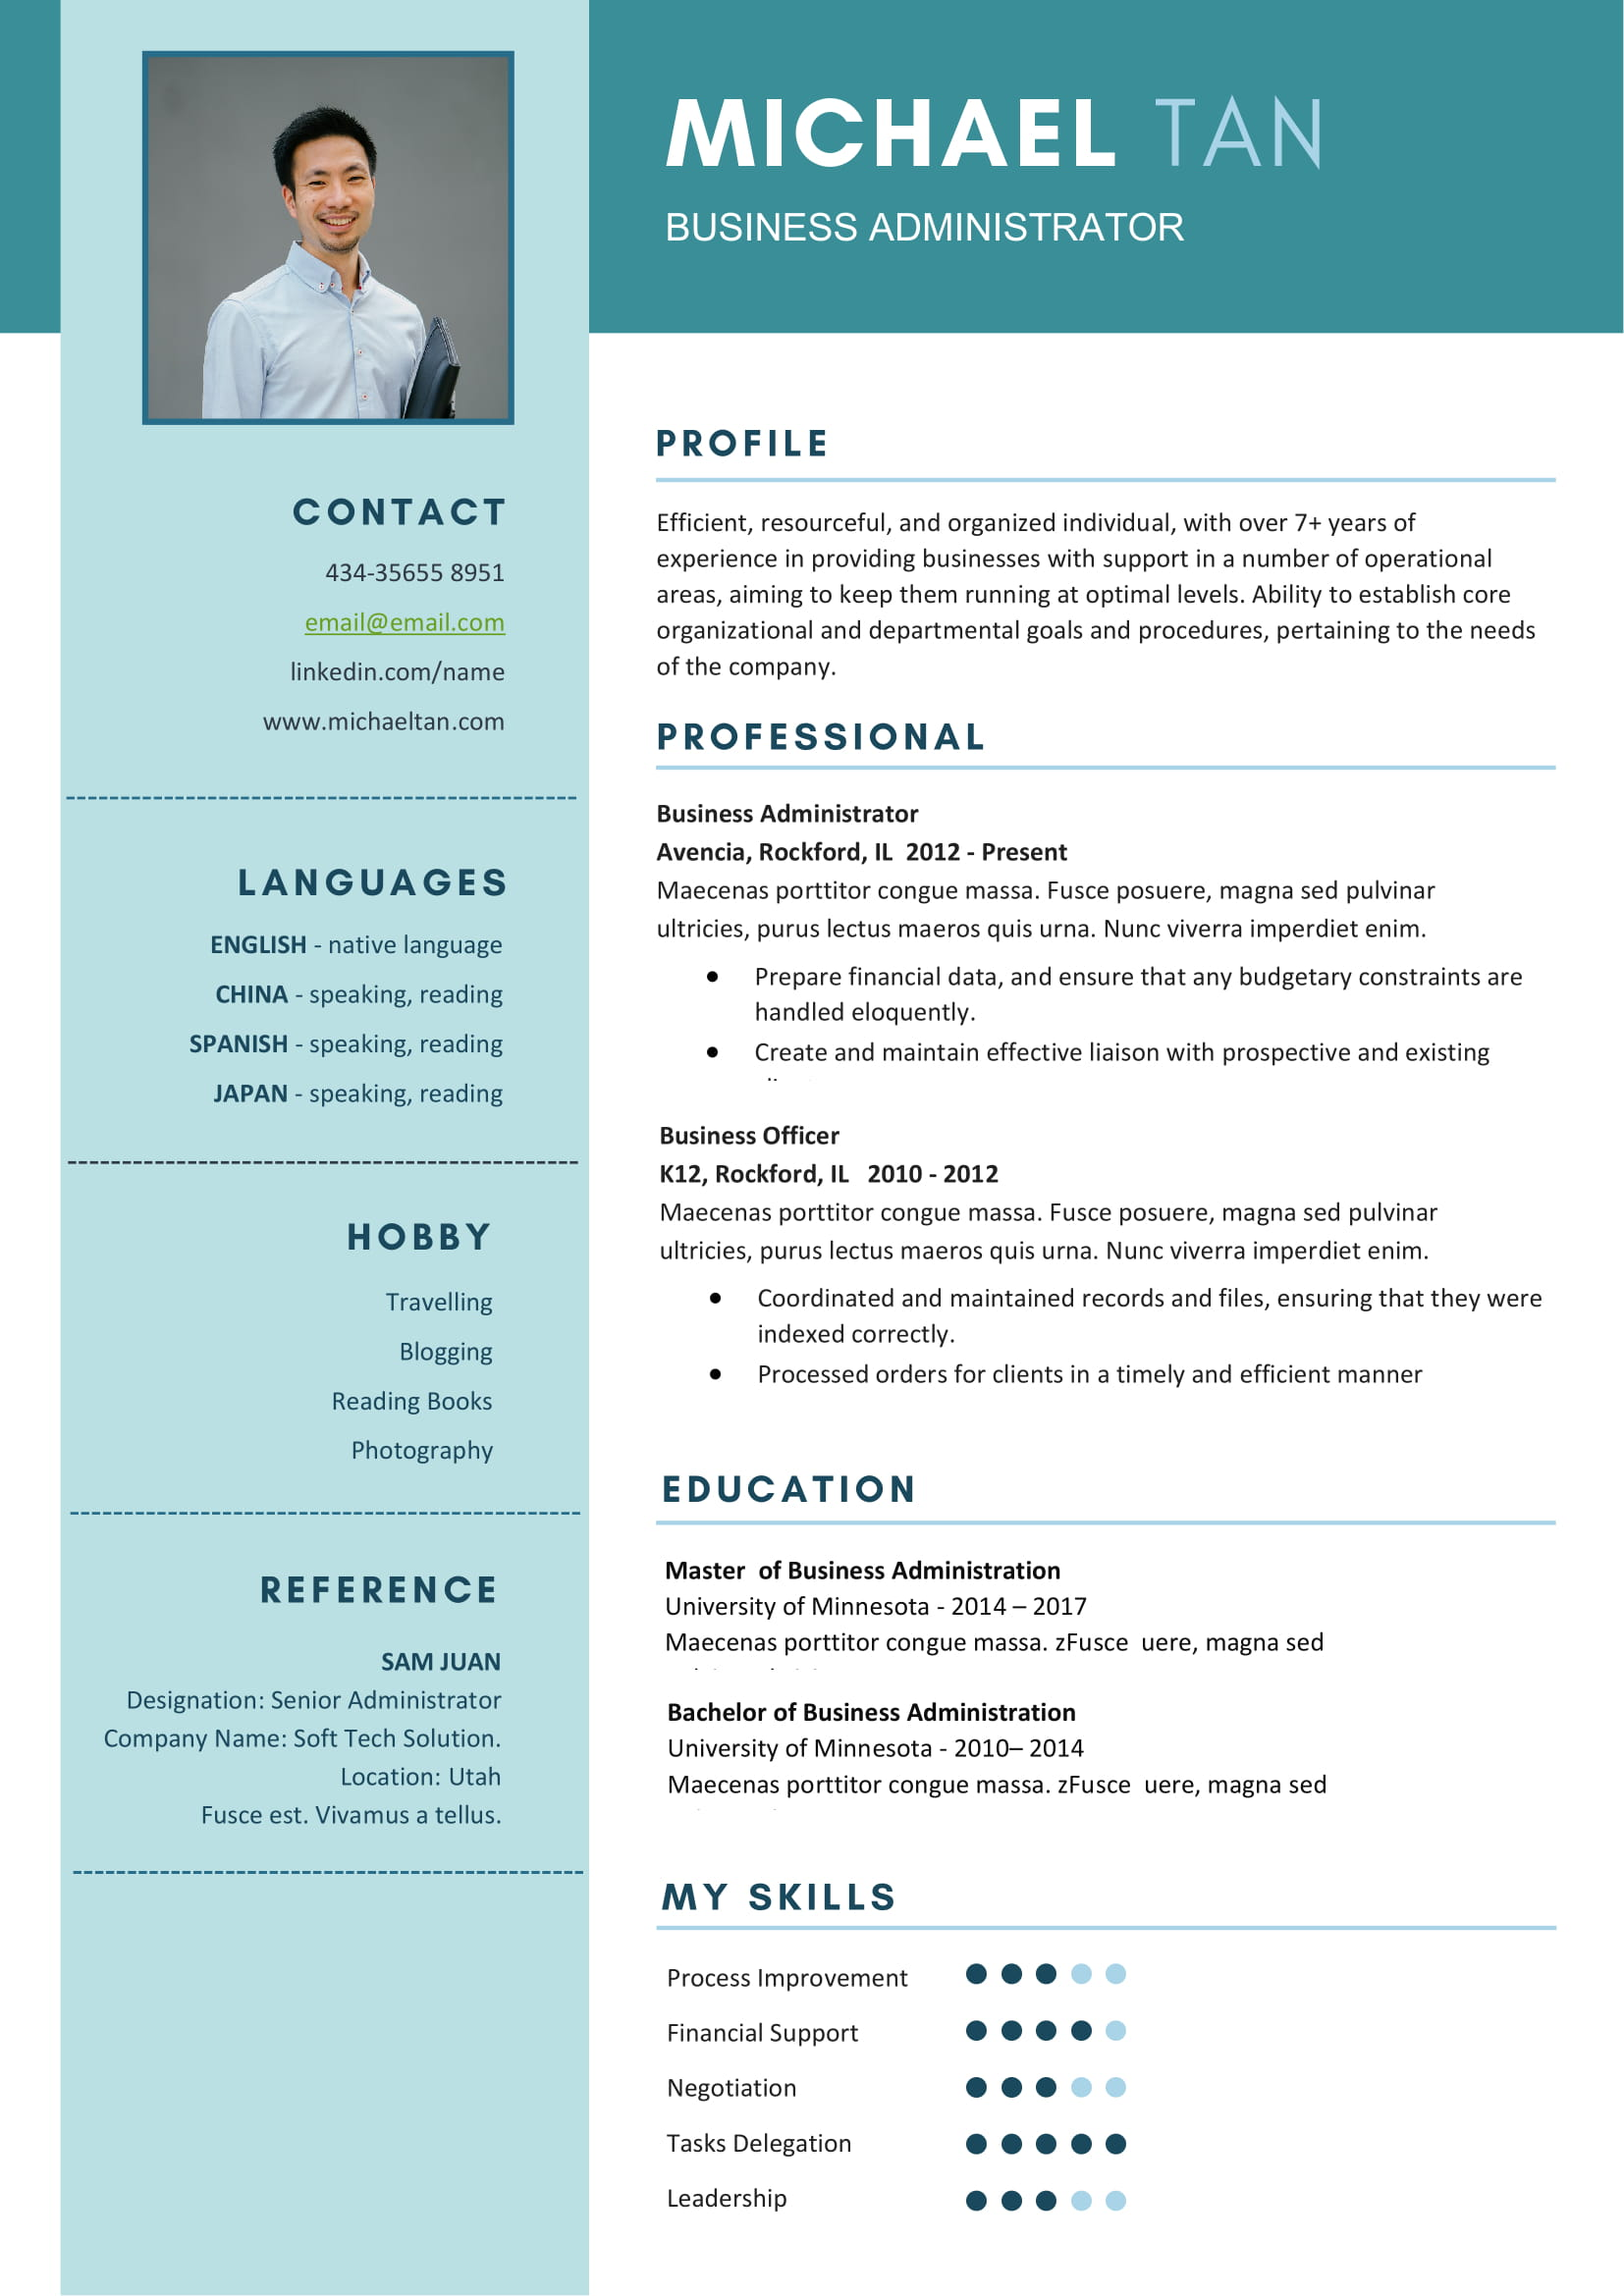 Free Business Administrator Resume Template